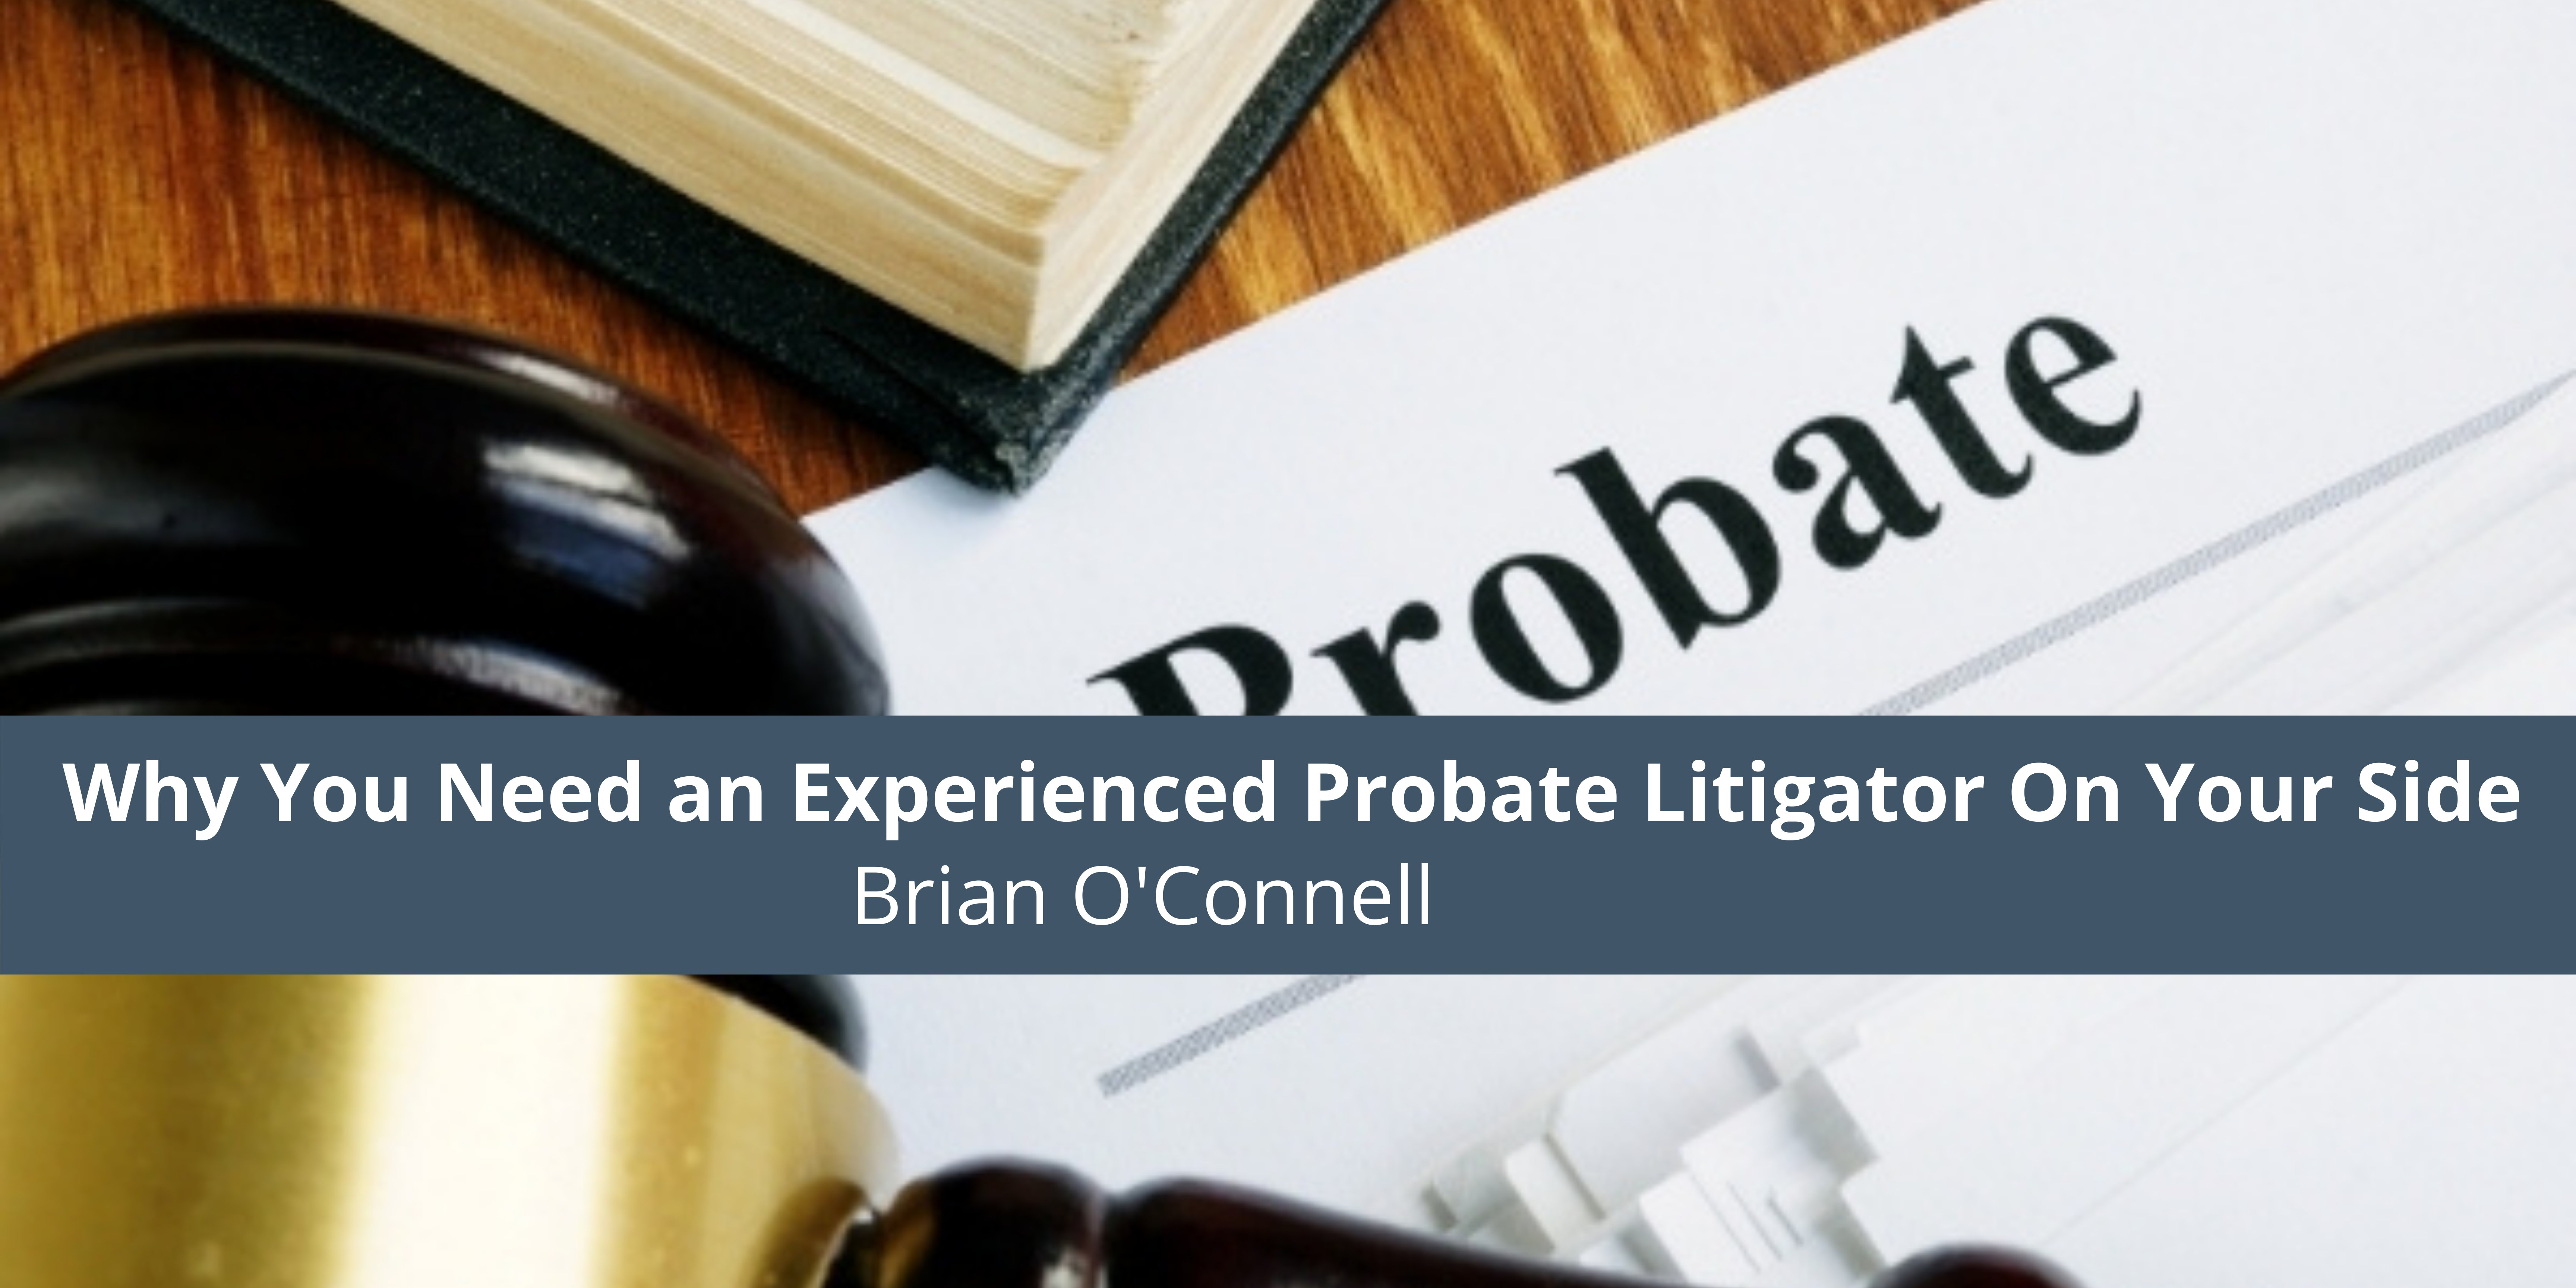 Why You Need an Experienced Probate Litigator On Your Side